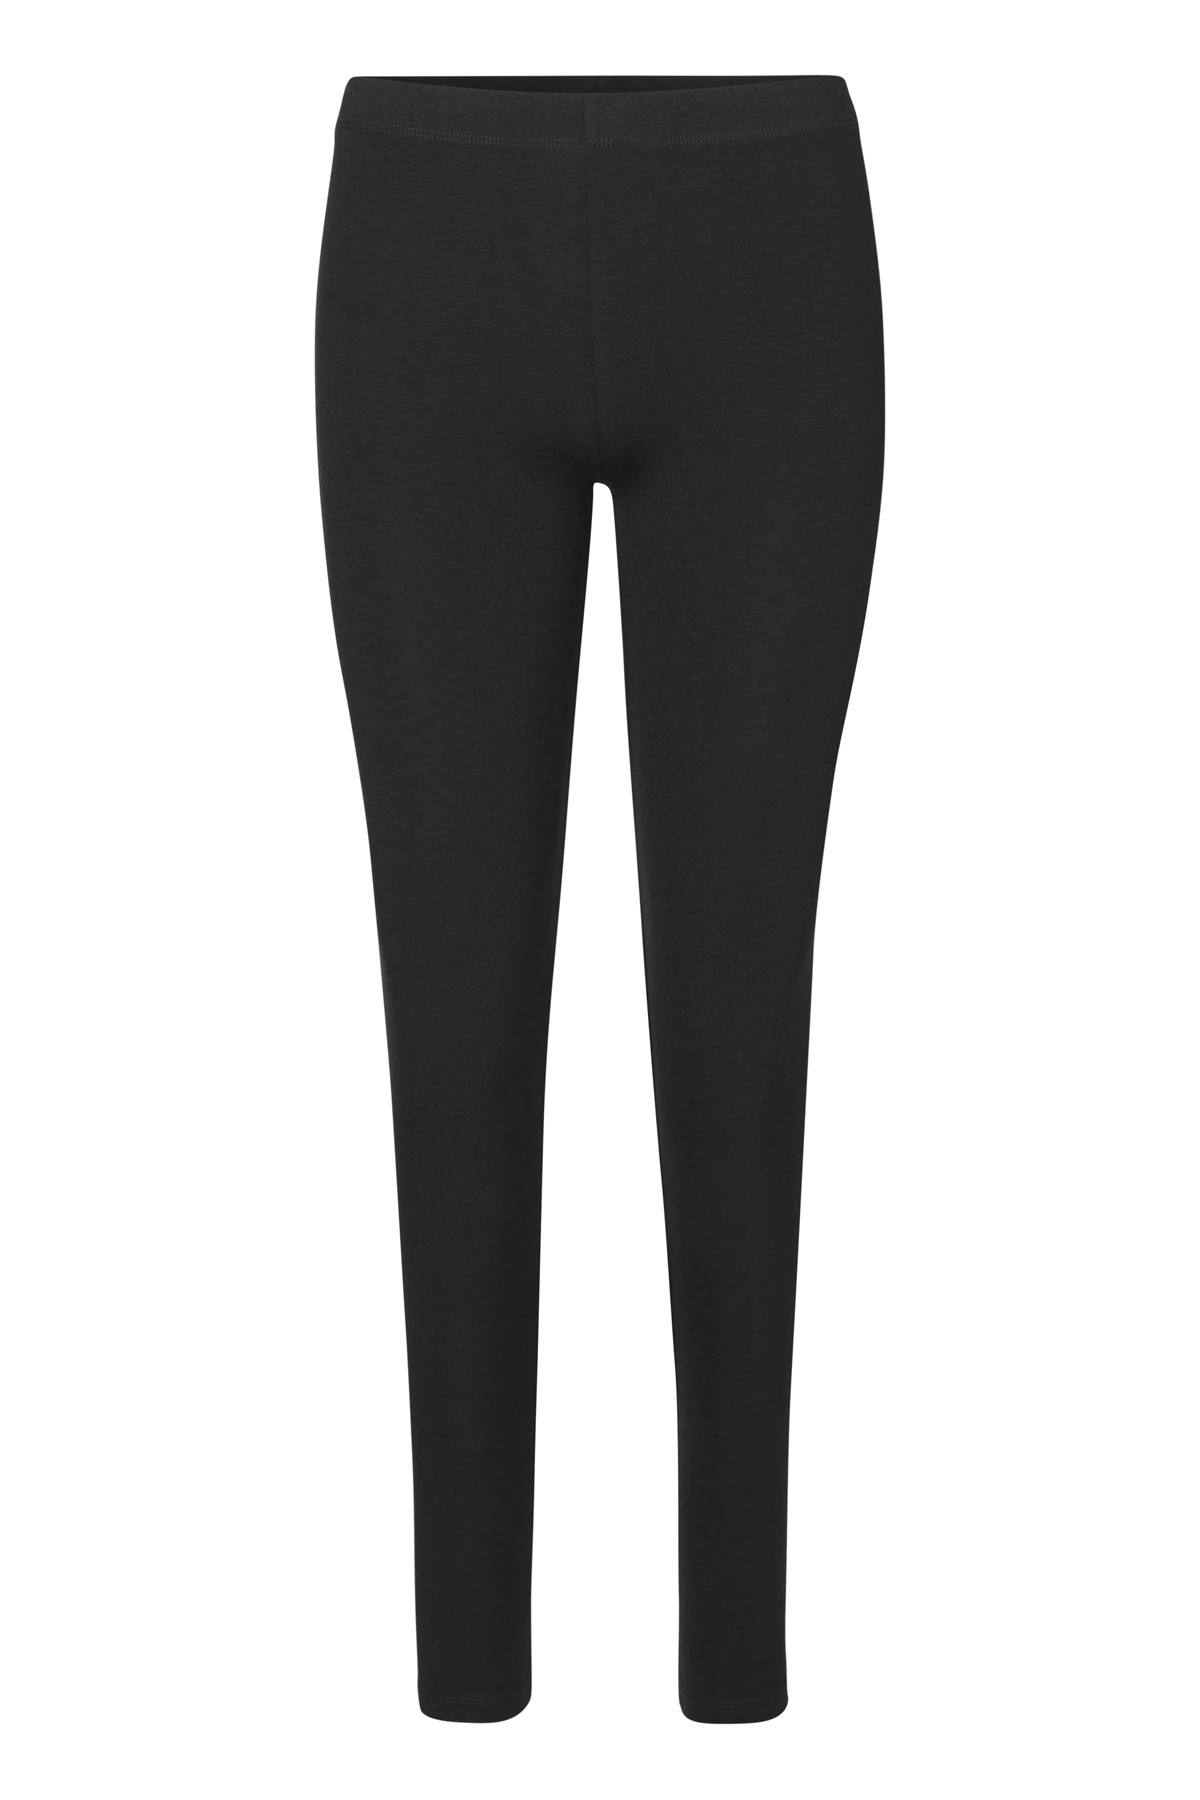 NOA NOA LEGGINGS 1-9398-2 00000 (Black, XS)